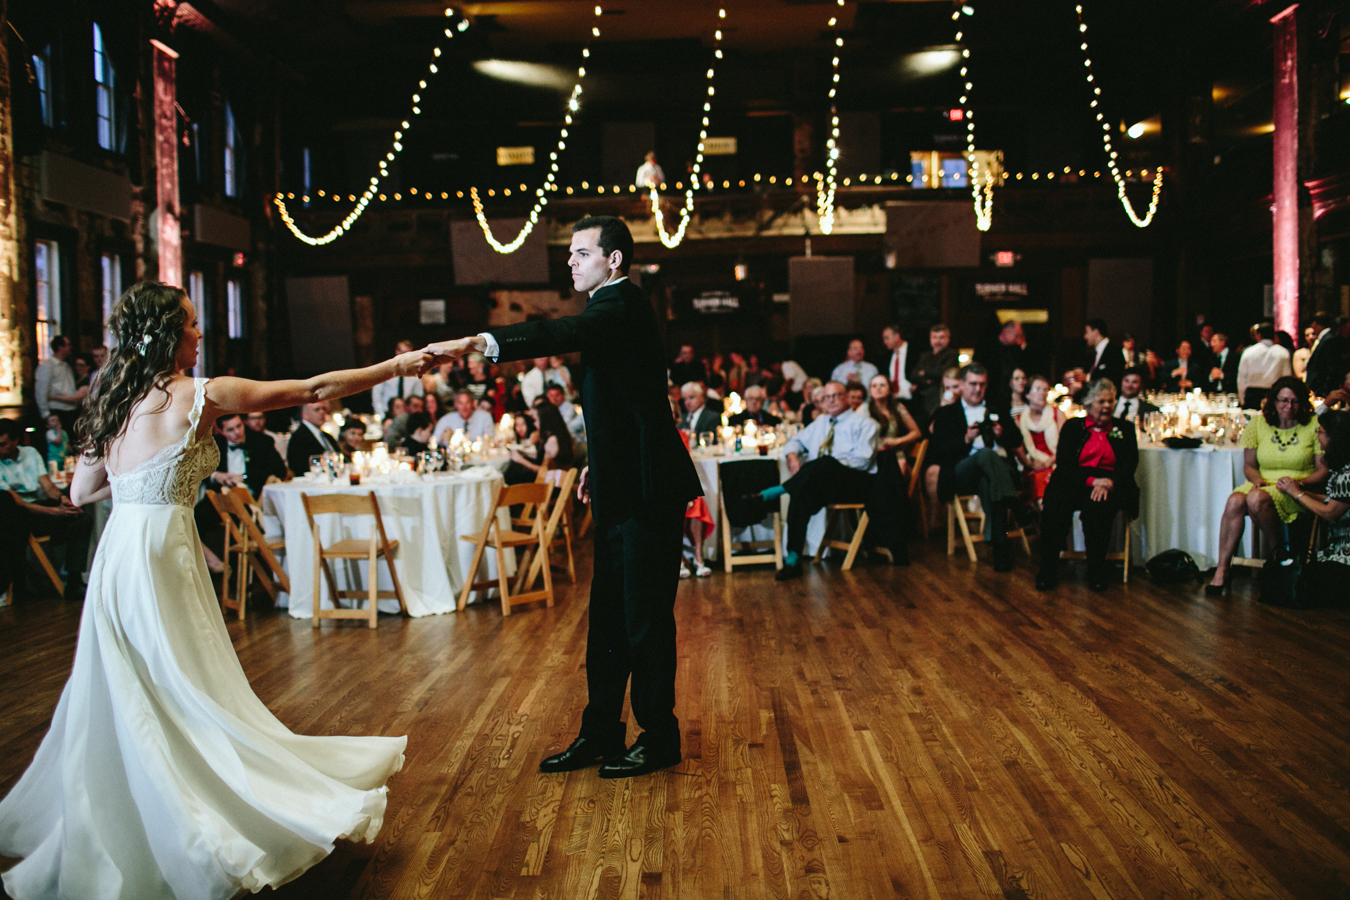 A Custom Wedding Dress Musical Family And Stunning Historic Ballroom In Downtown Milwaukee This Is One You Don T Wanna Miss